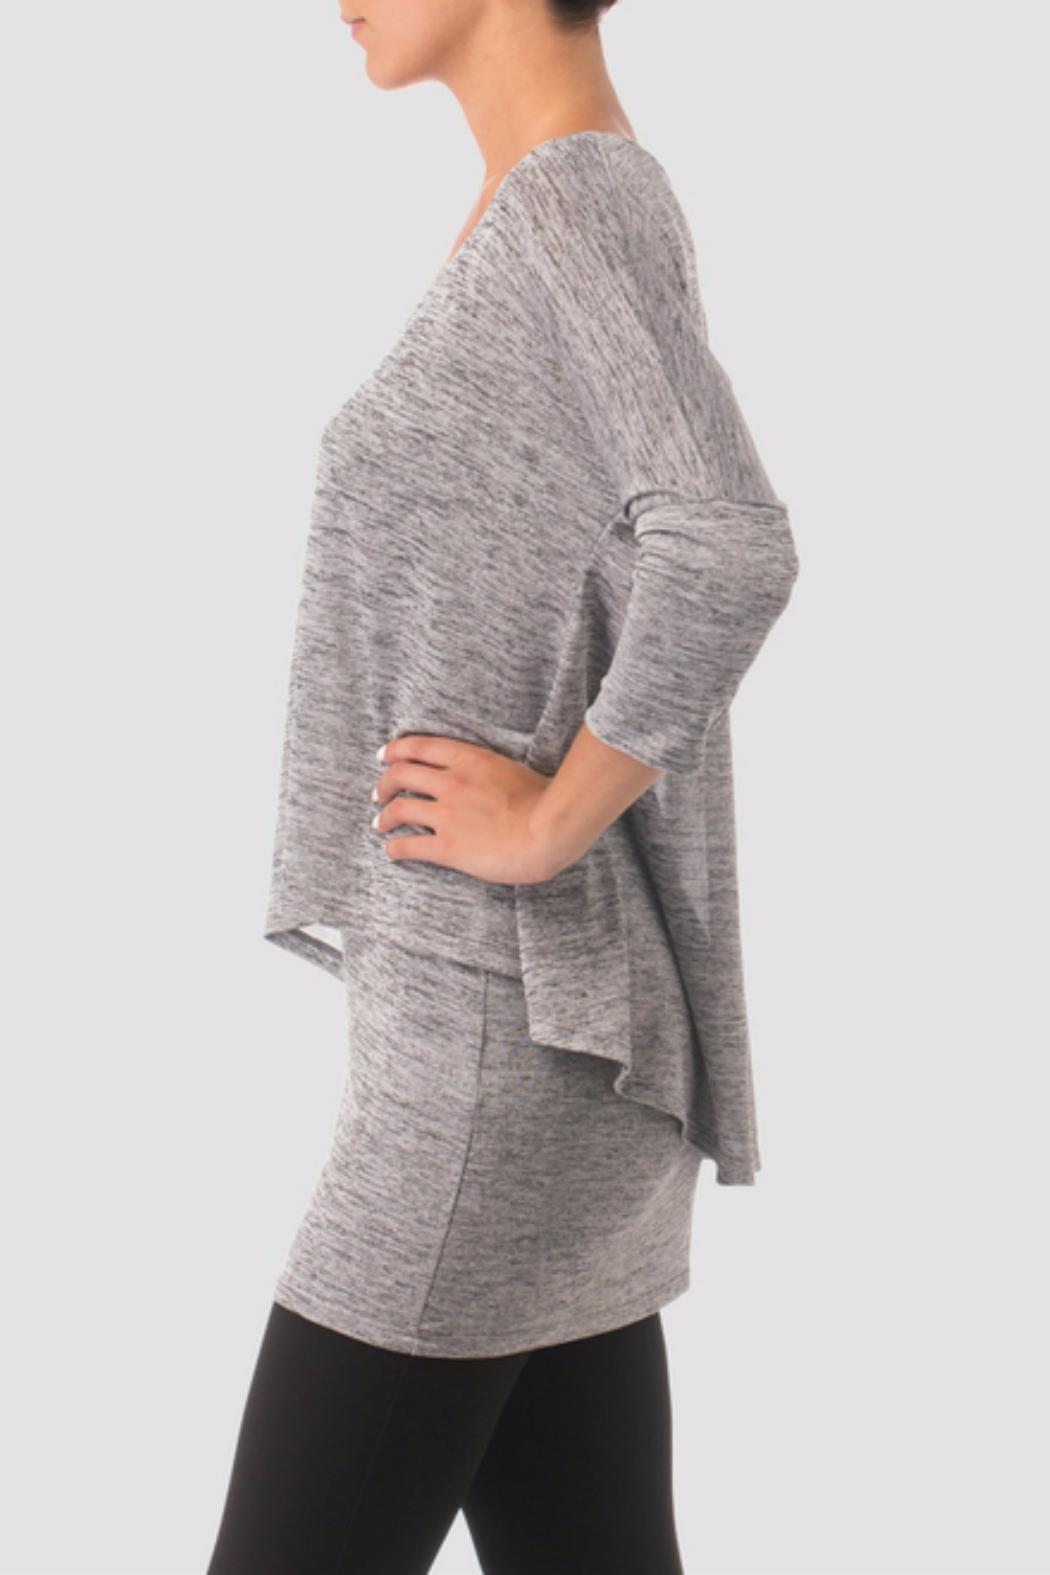 Tunic Style Sweaters Baggage Clothing